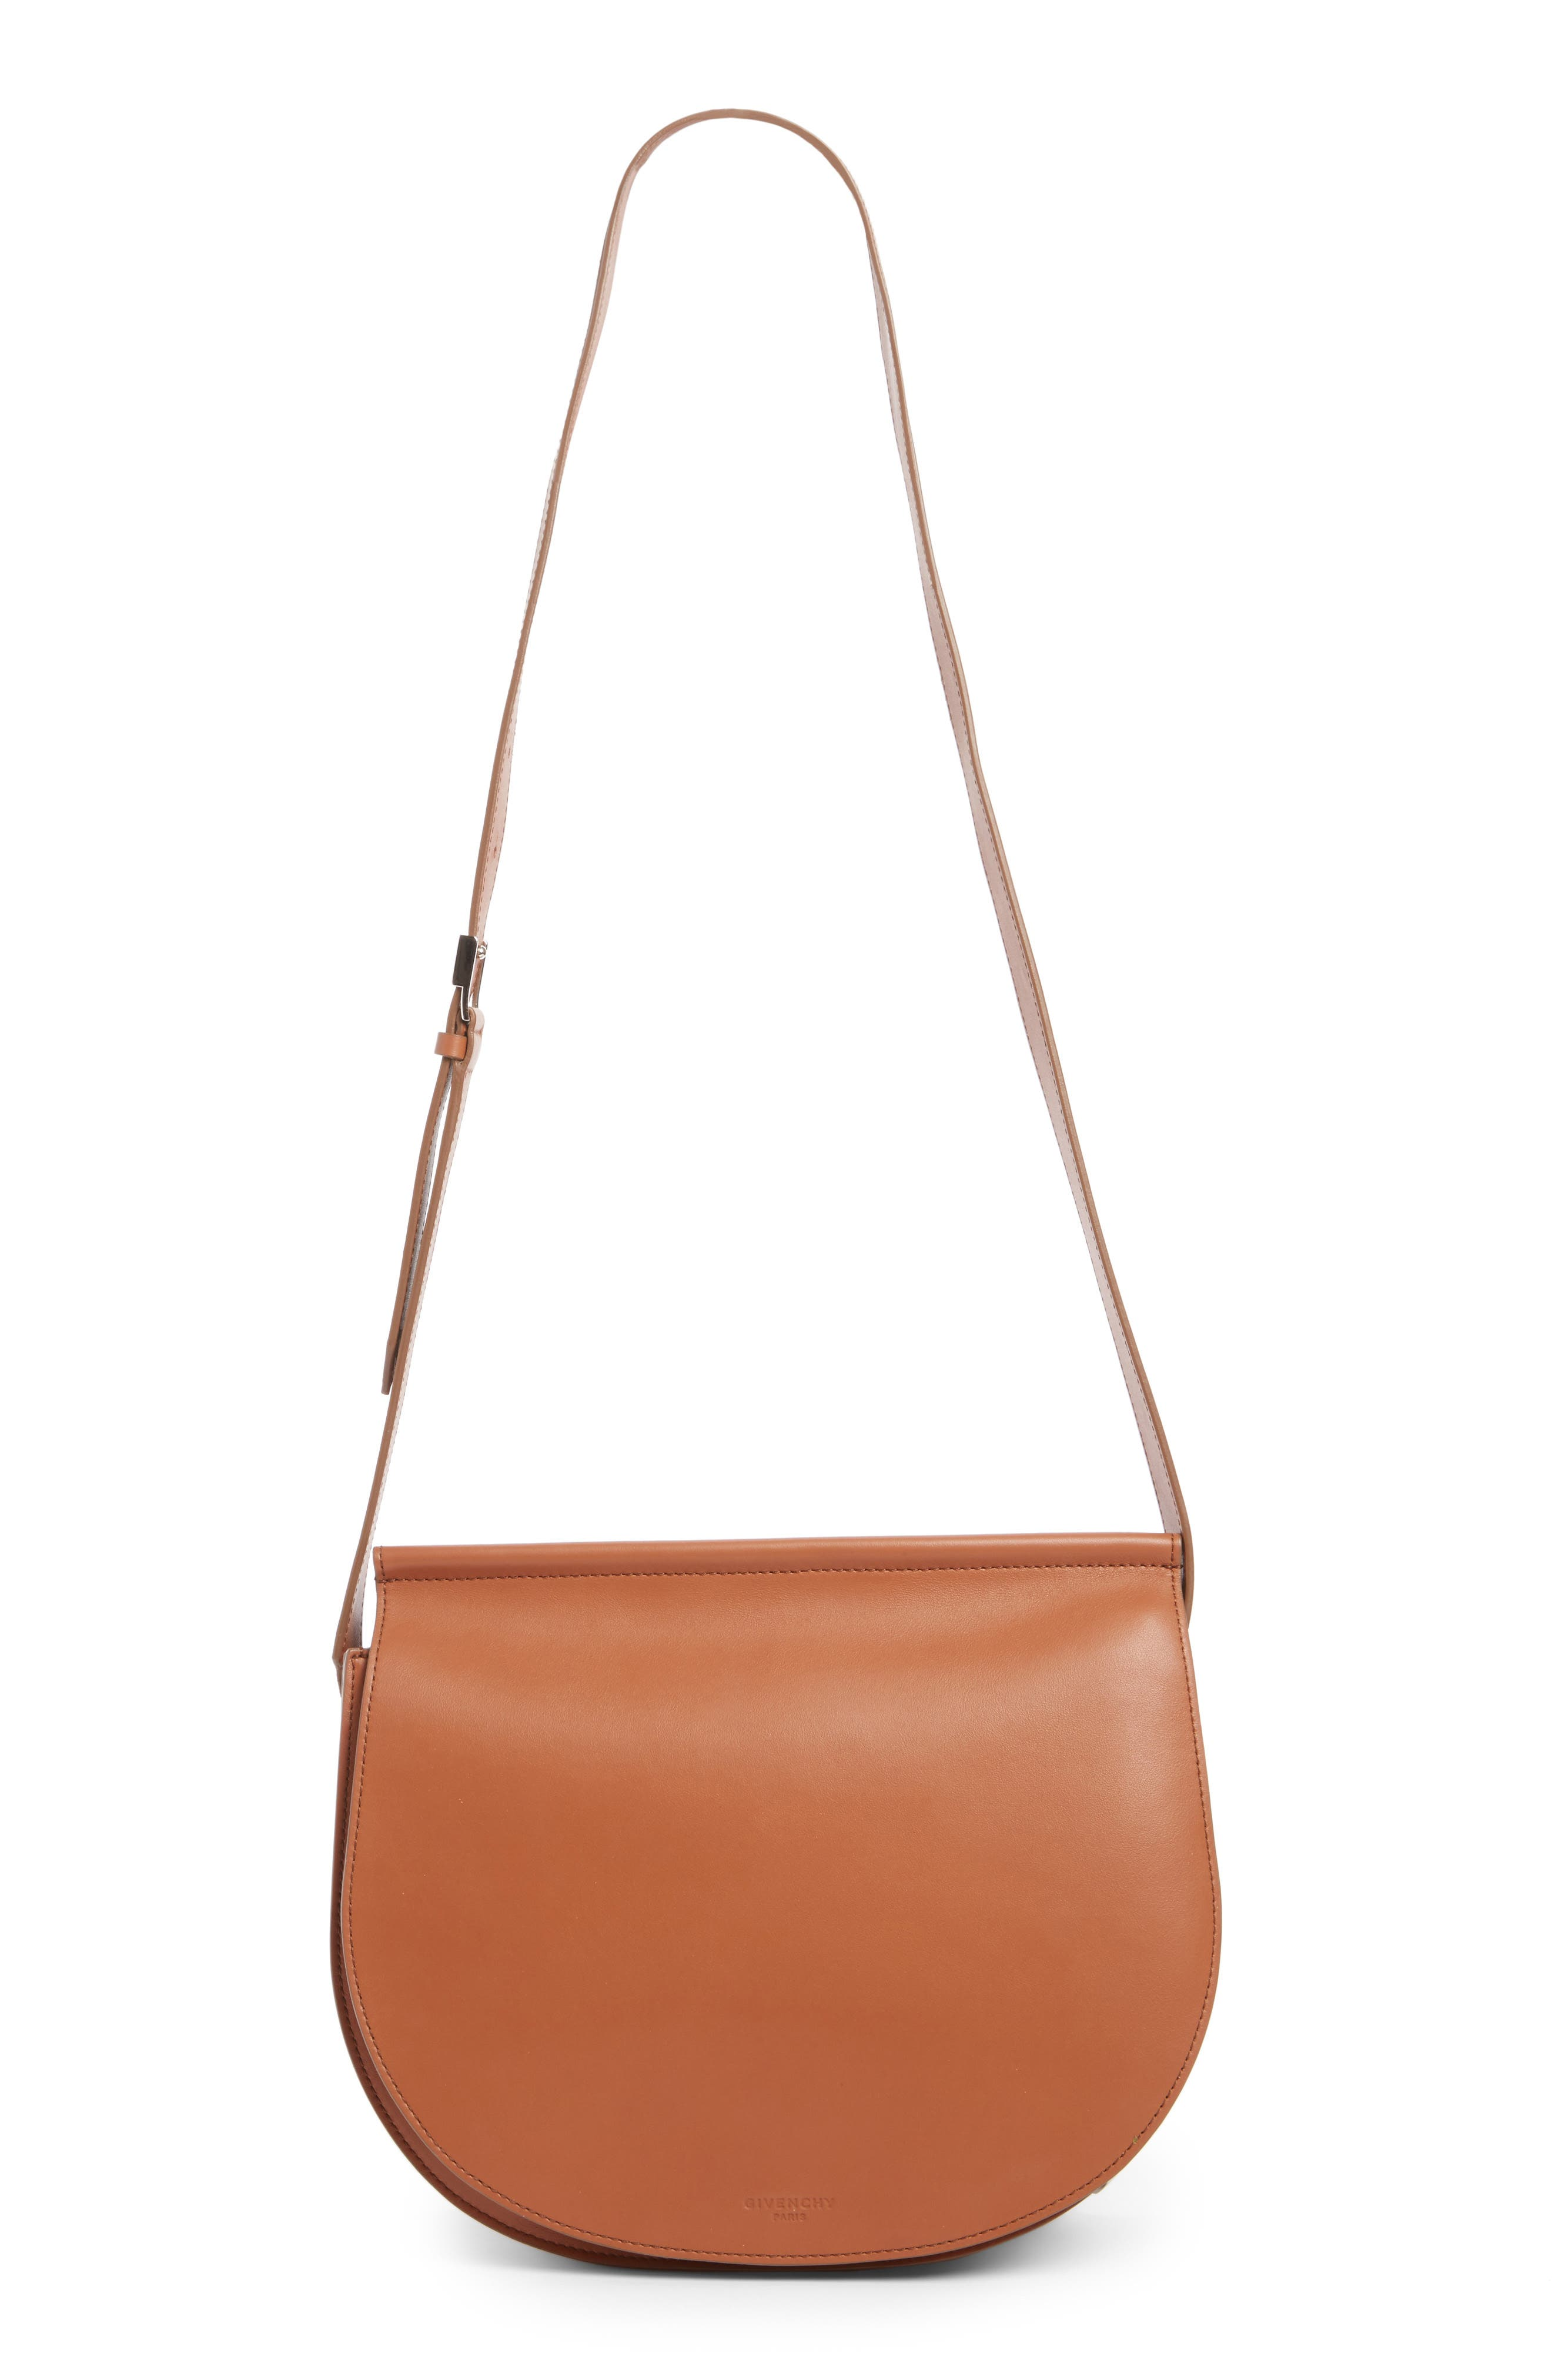 Givenchy Infinity Calfskin Leather Saddle Bag